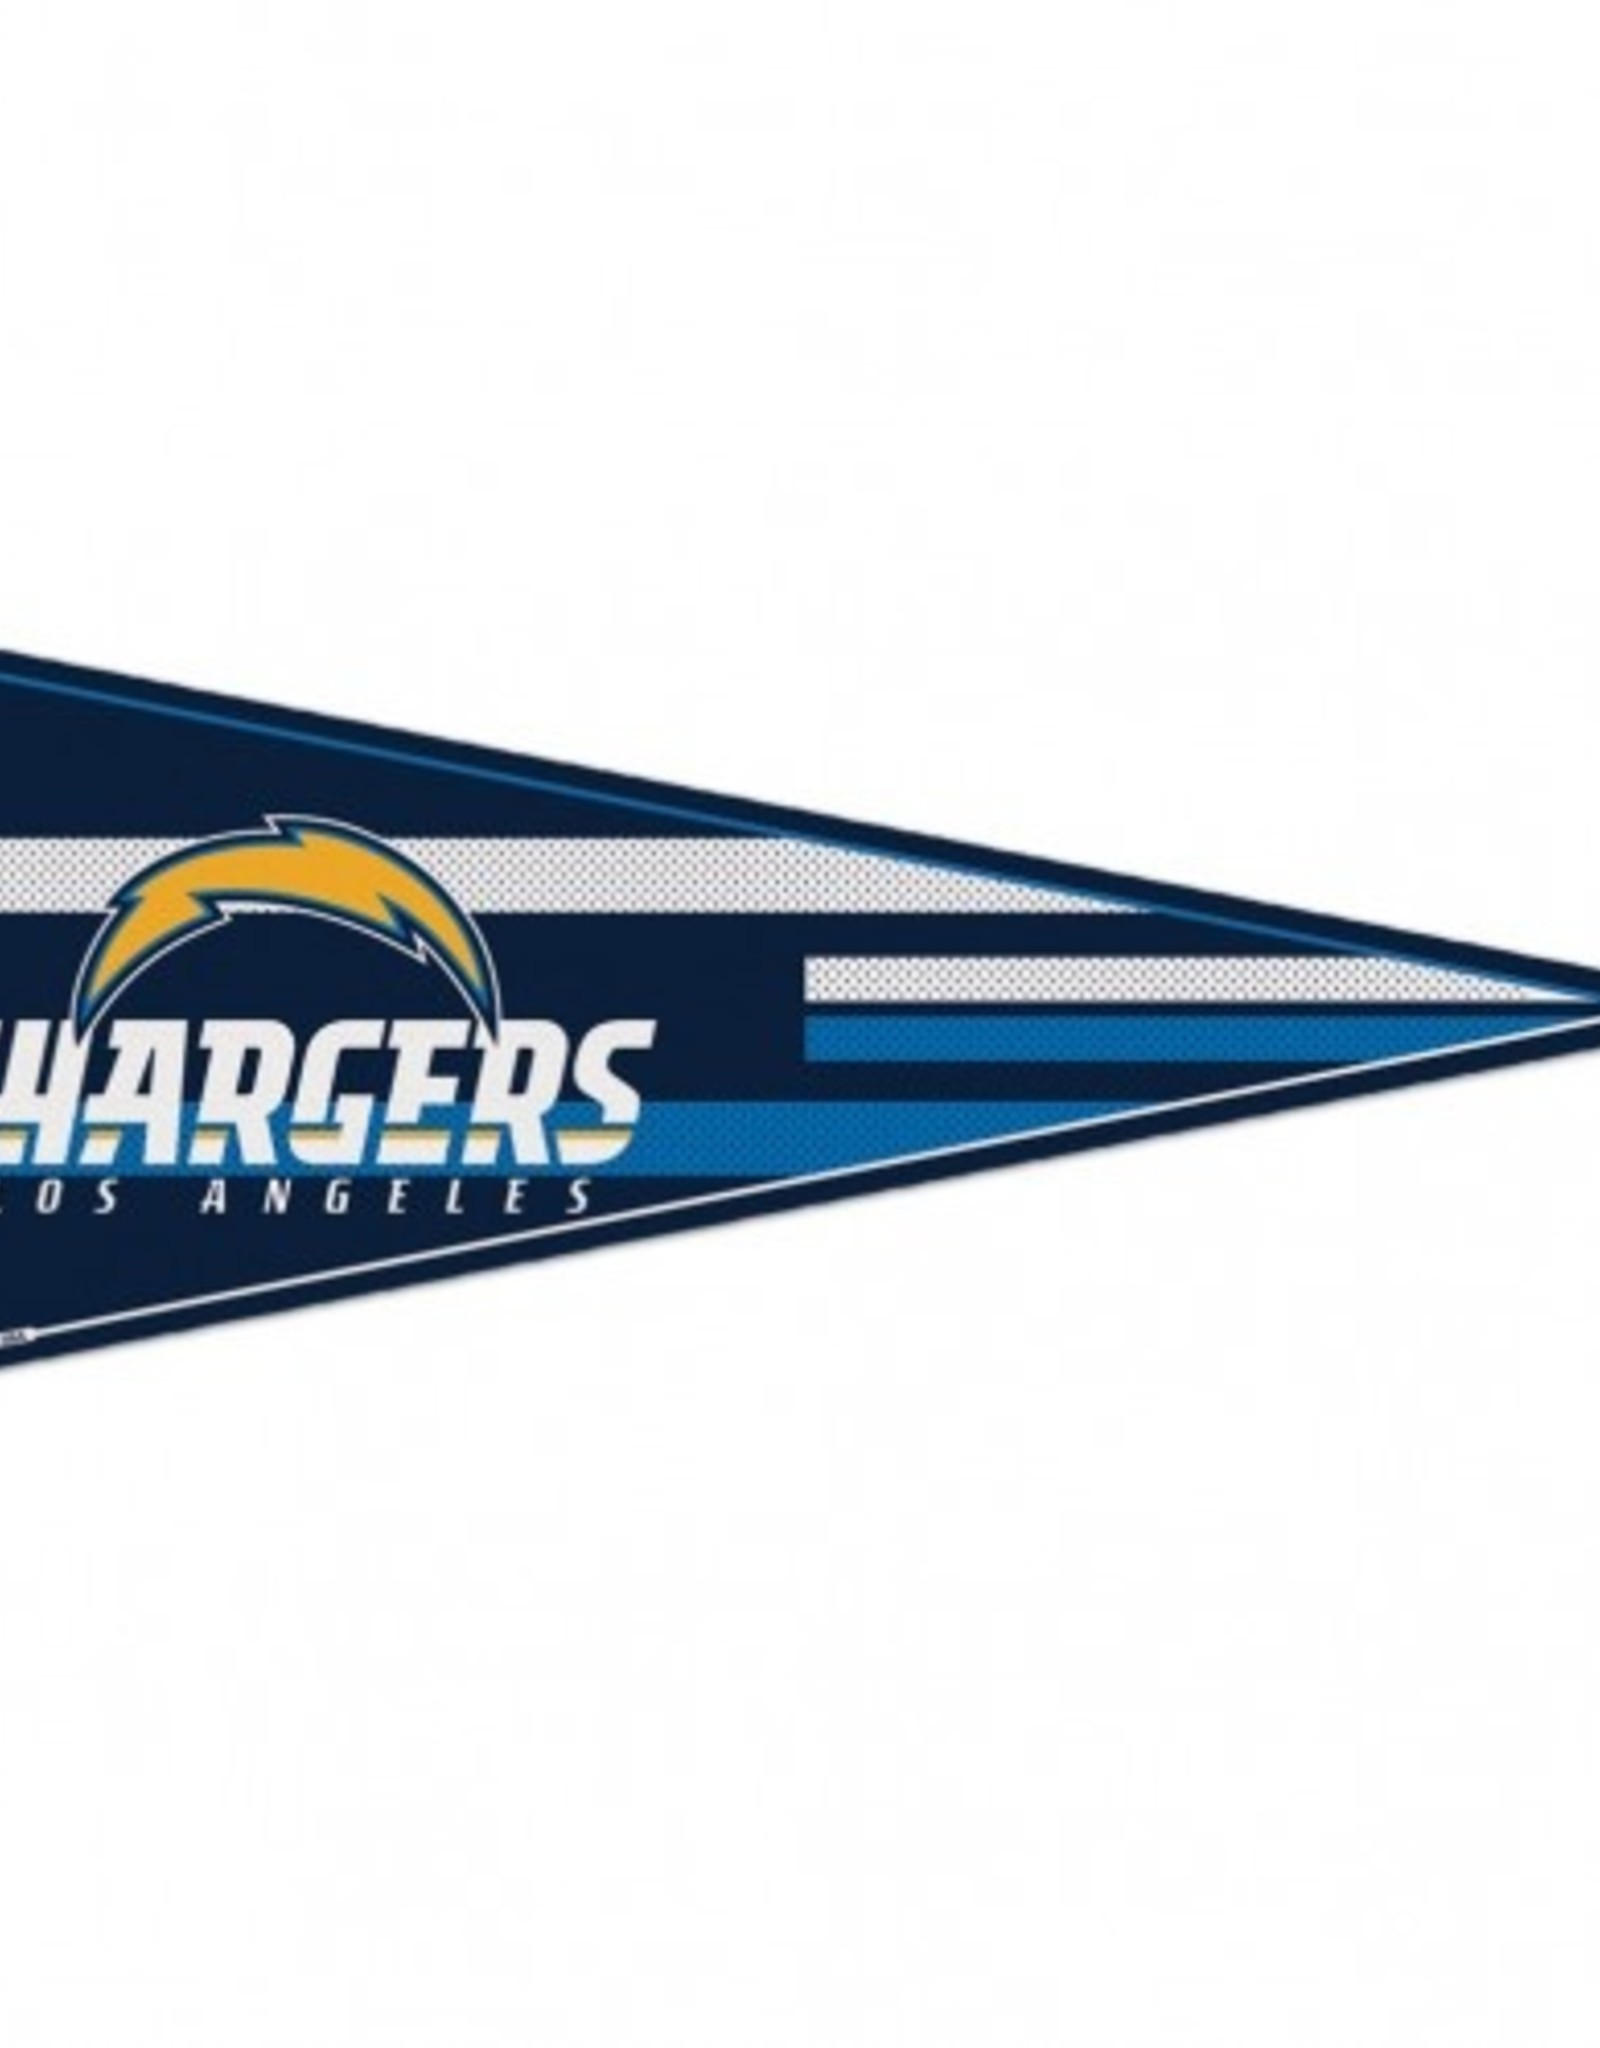 "Los Angeles Chargers 12""x30"" Classic Pennant"